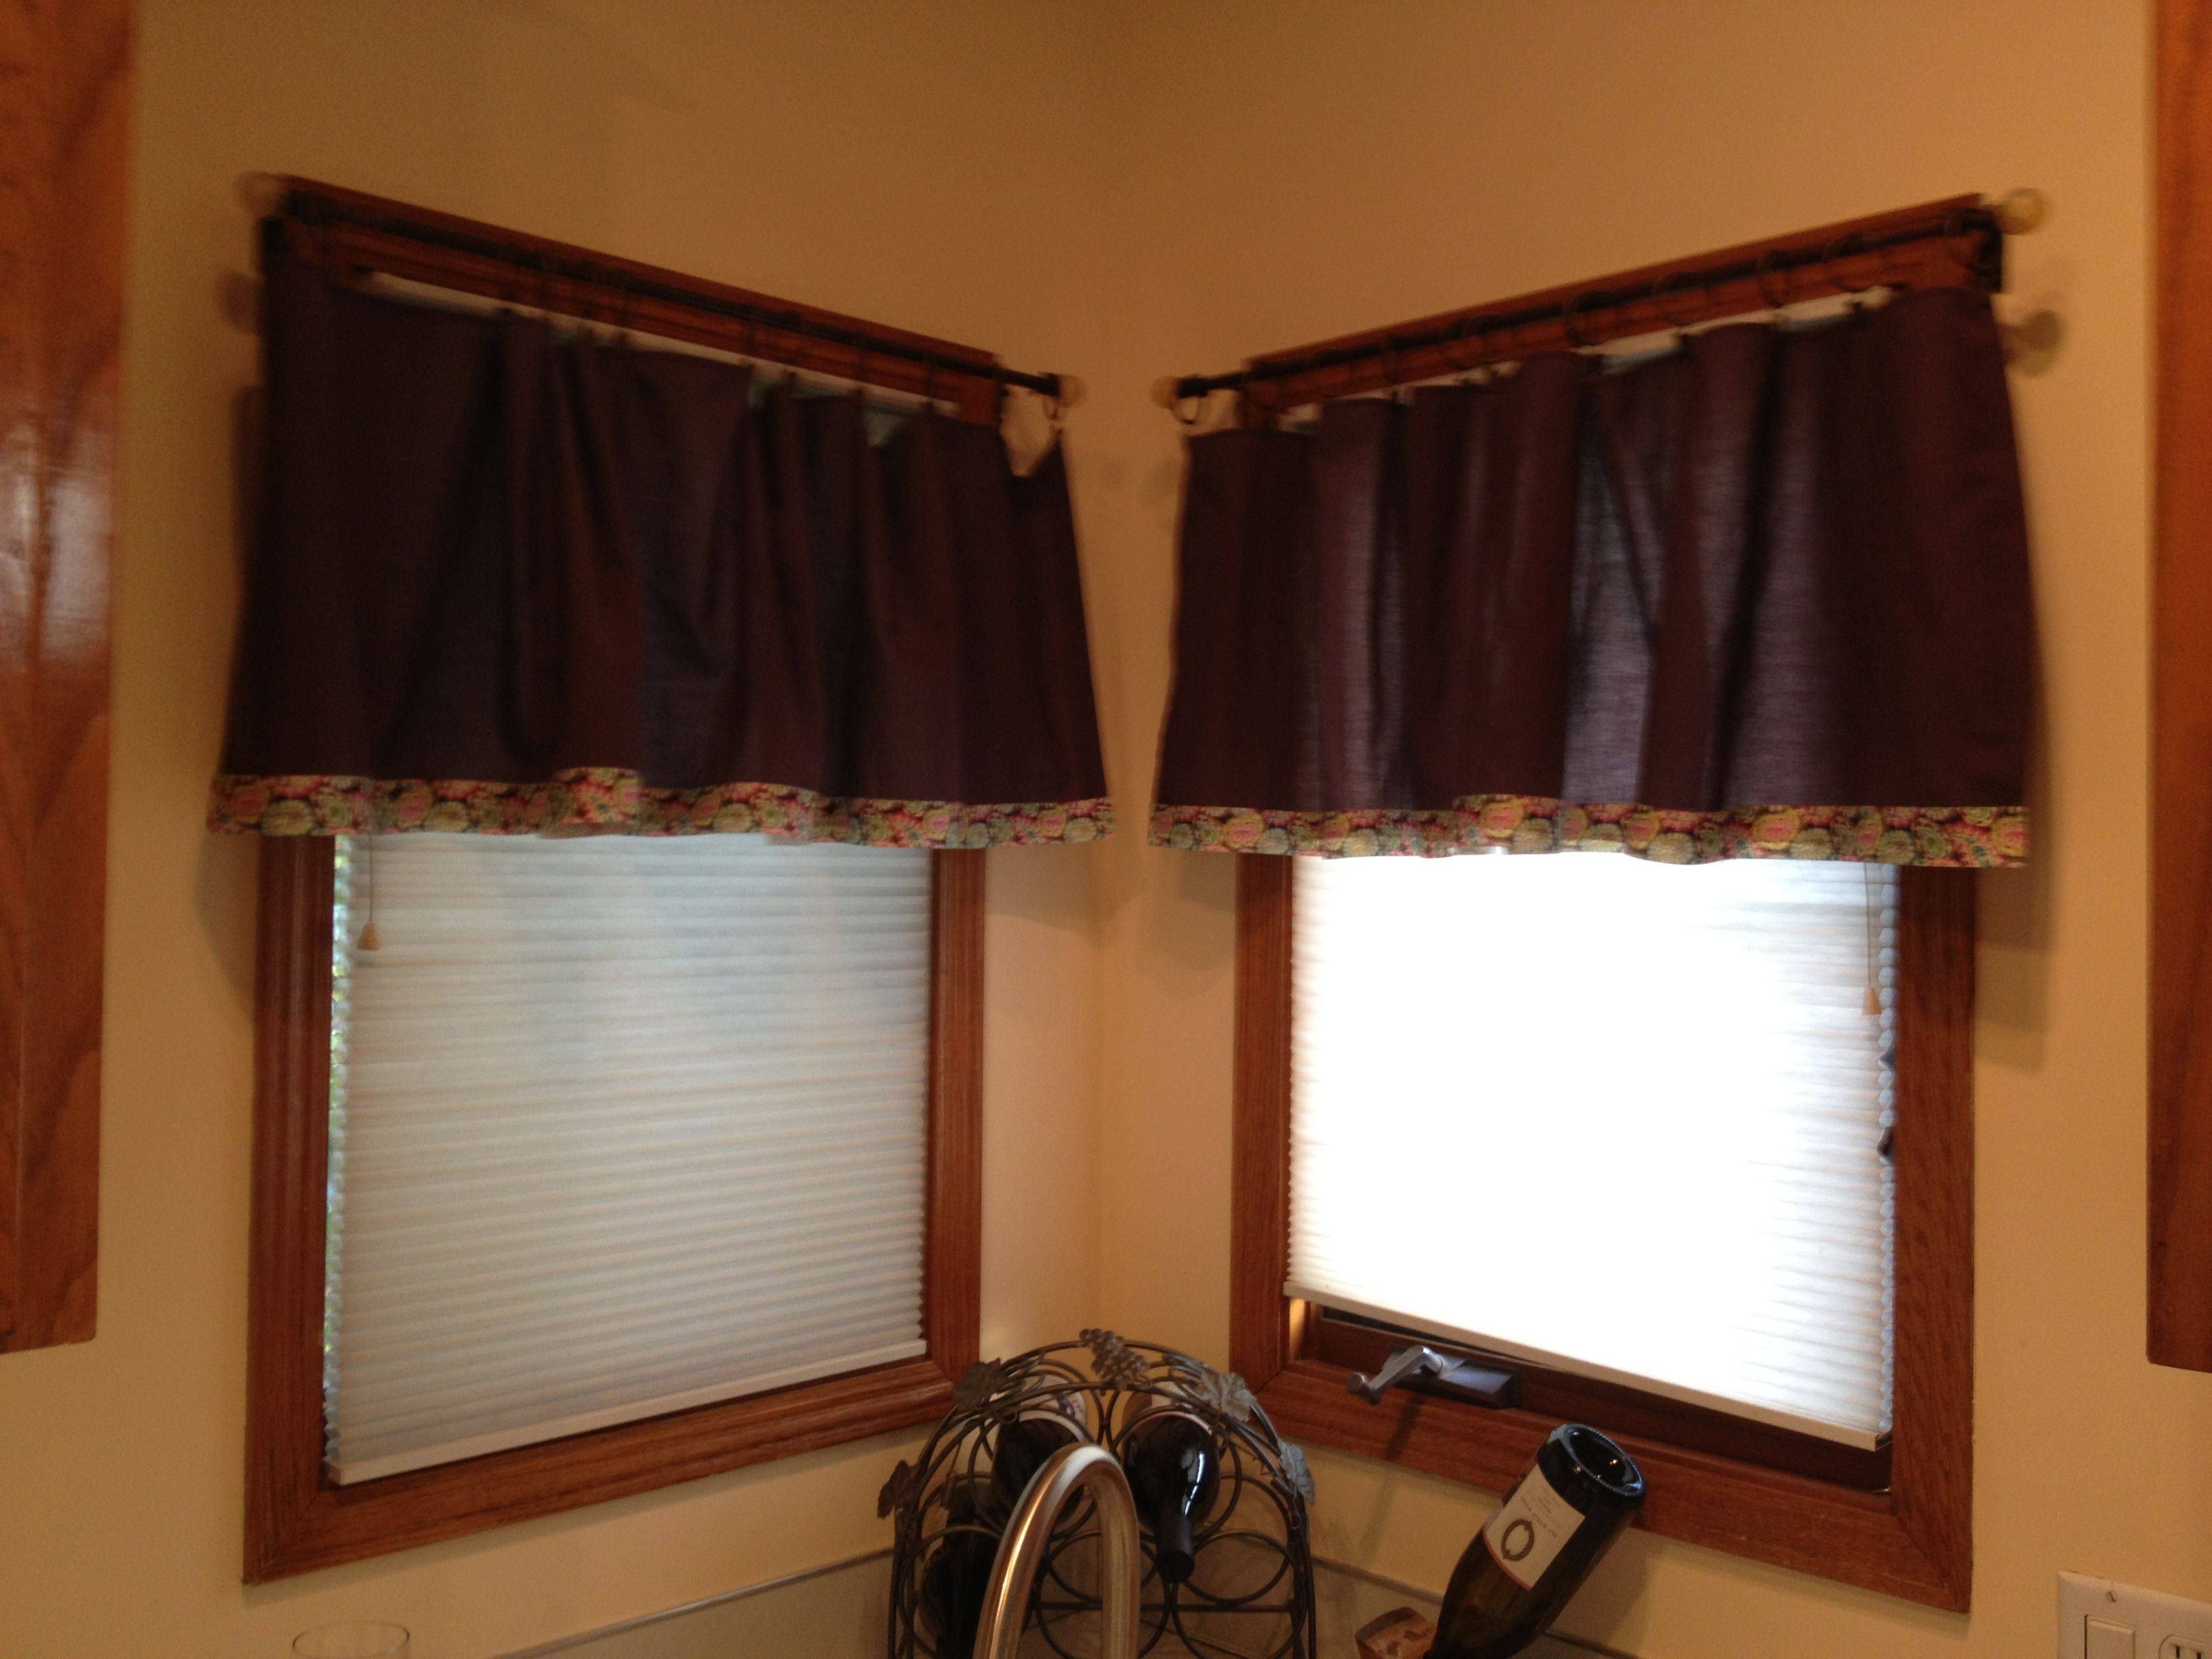 No Sew Curtains Made From Goodwill Bed Skirt Ribbon Iron On Hemming Tape And Curtain Hoops No Sew Curtains Curtains Bedskirt